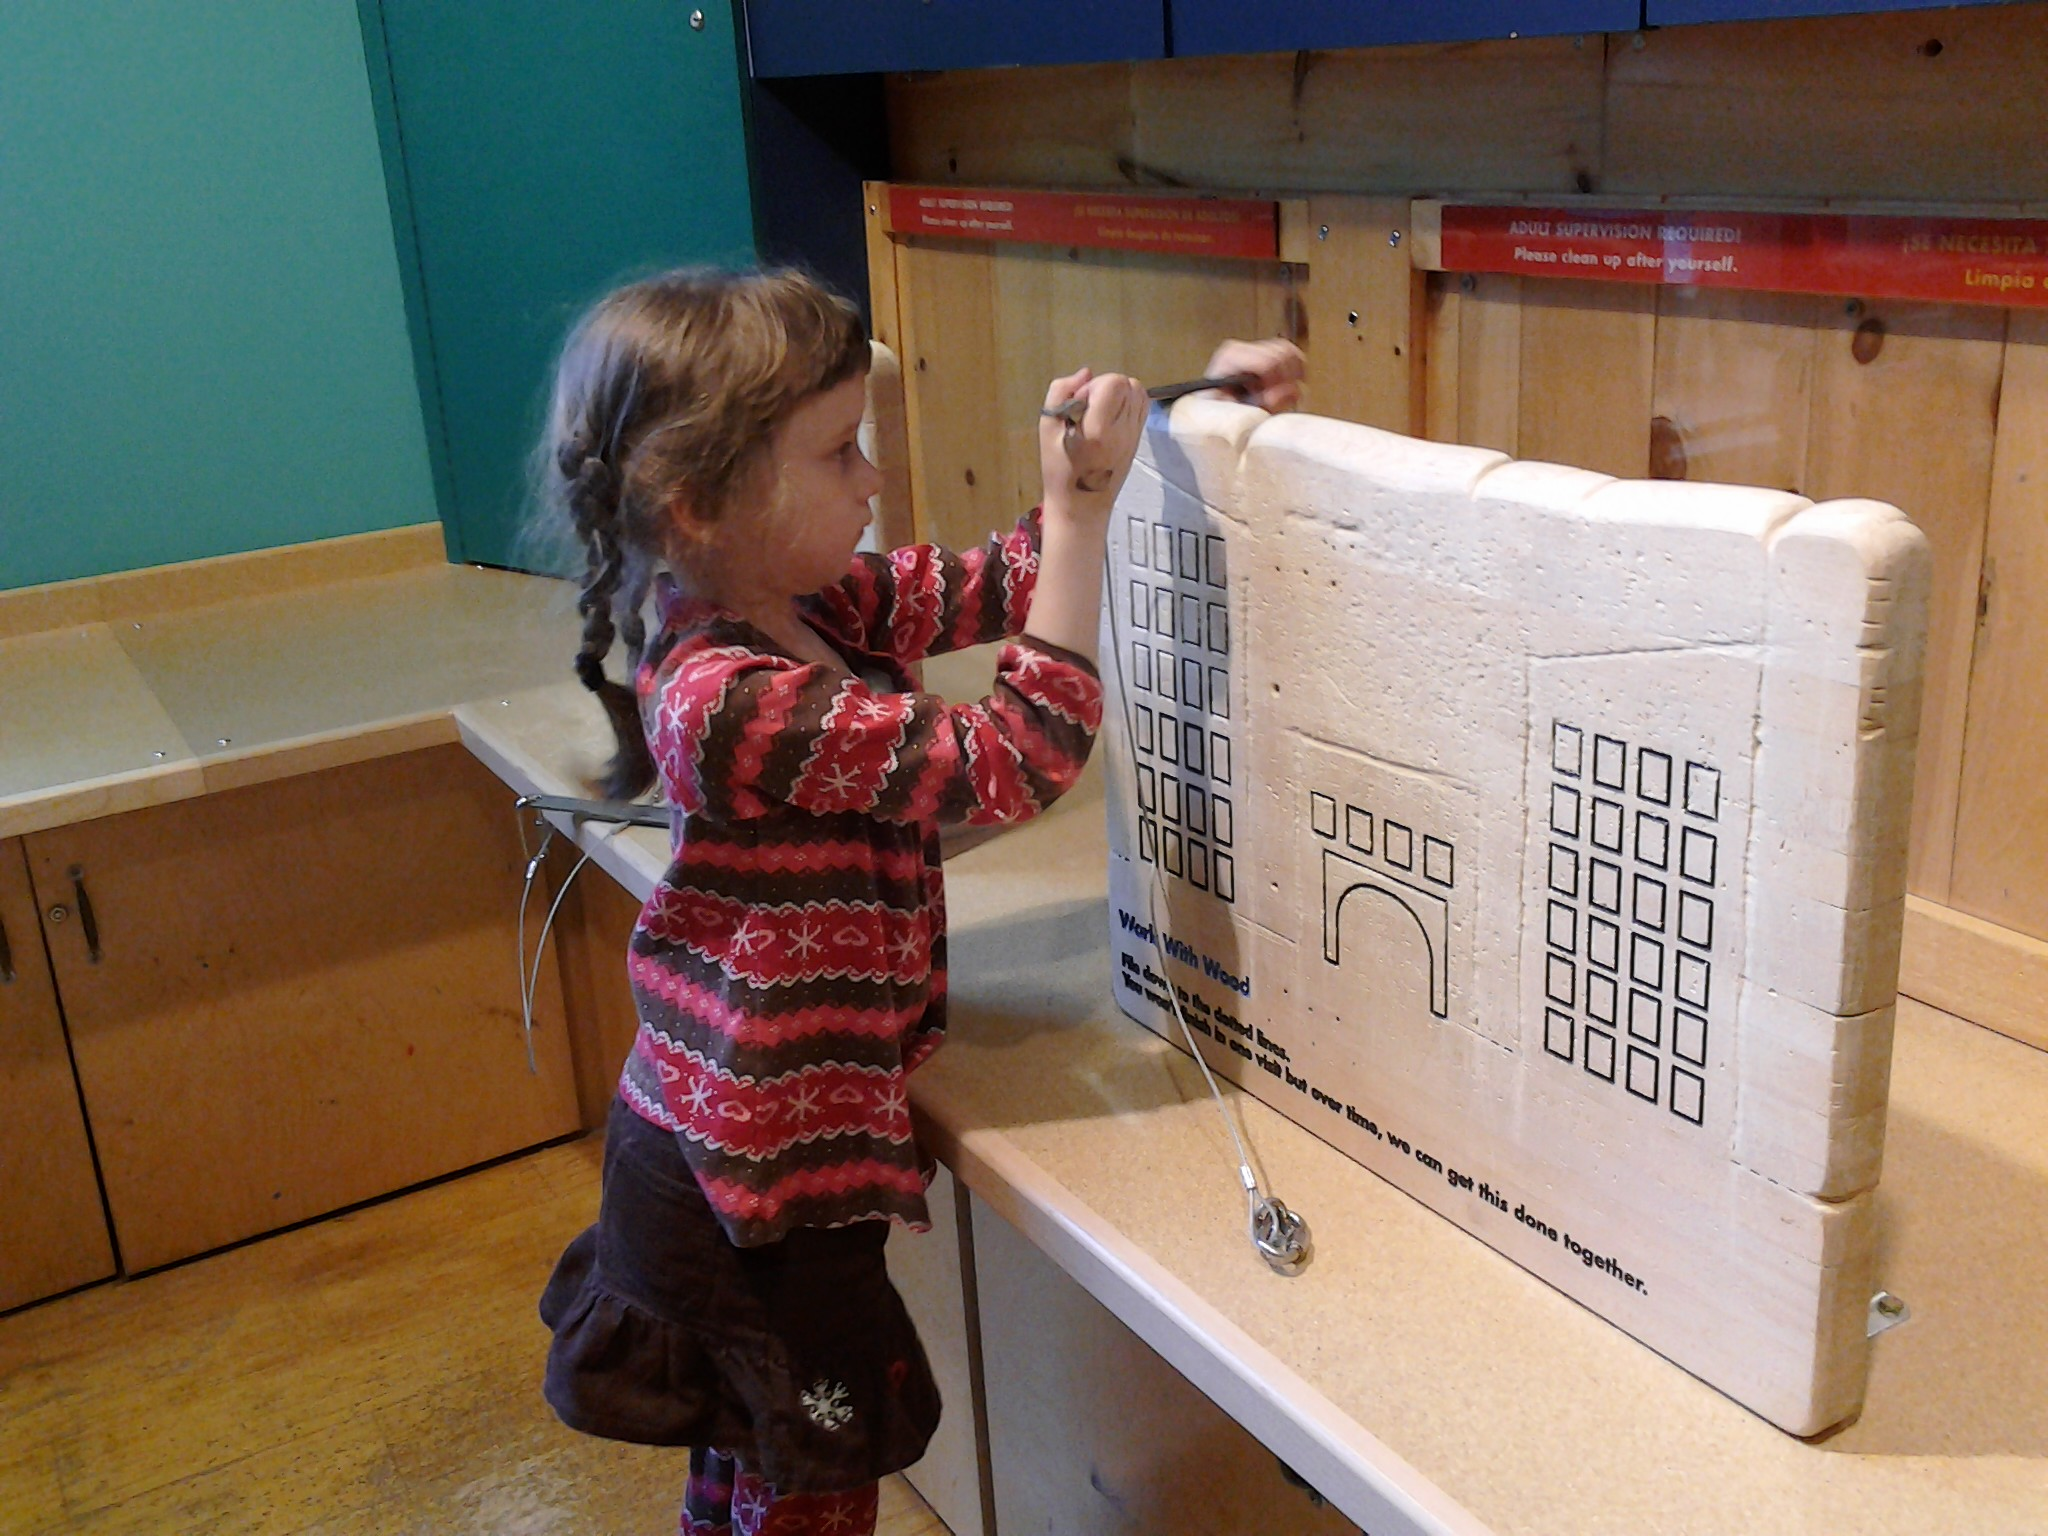 K carving at the Boston Children's Museum